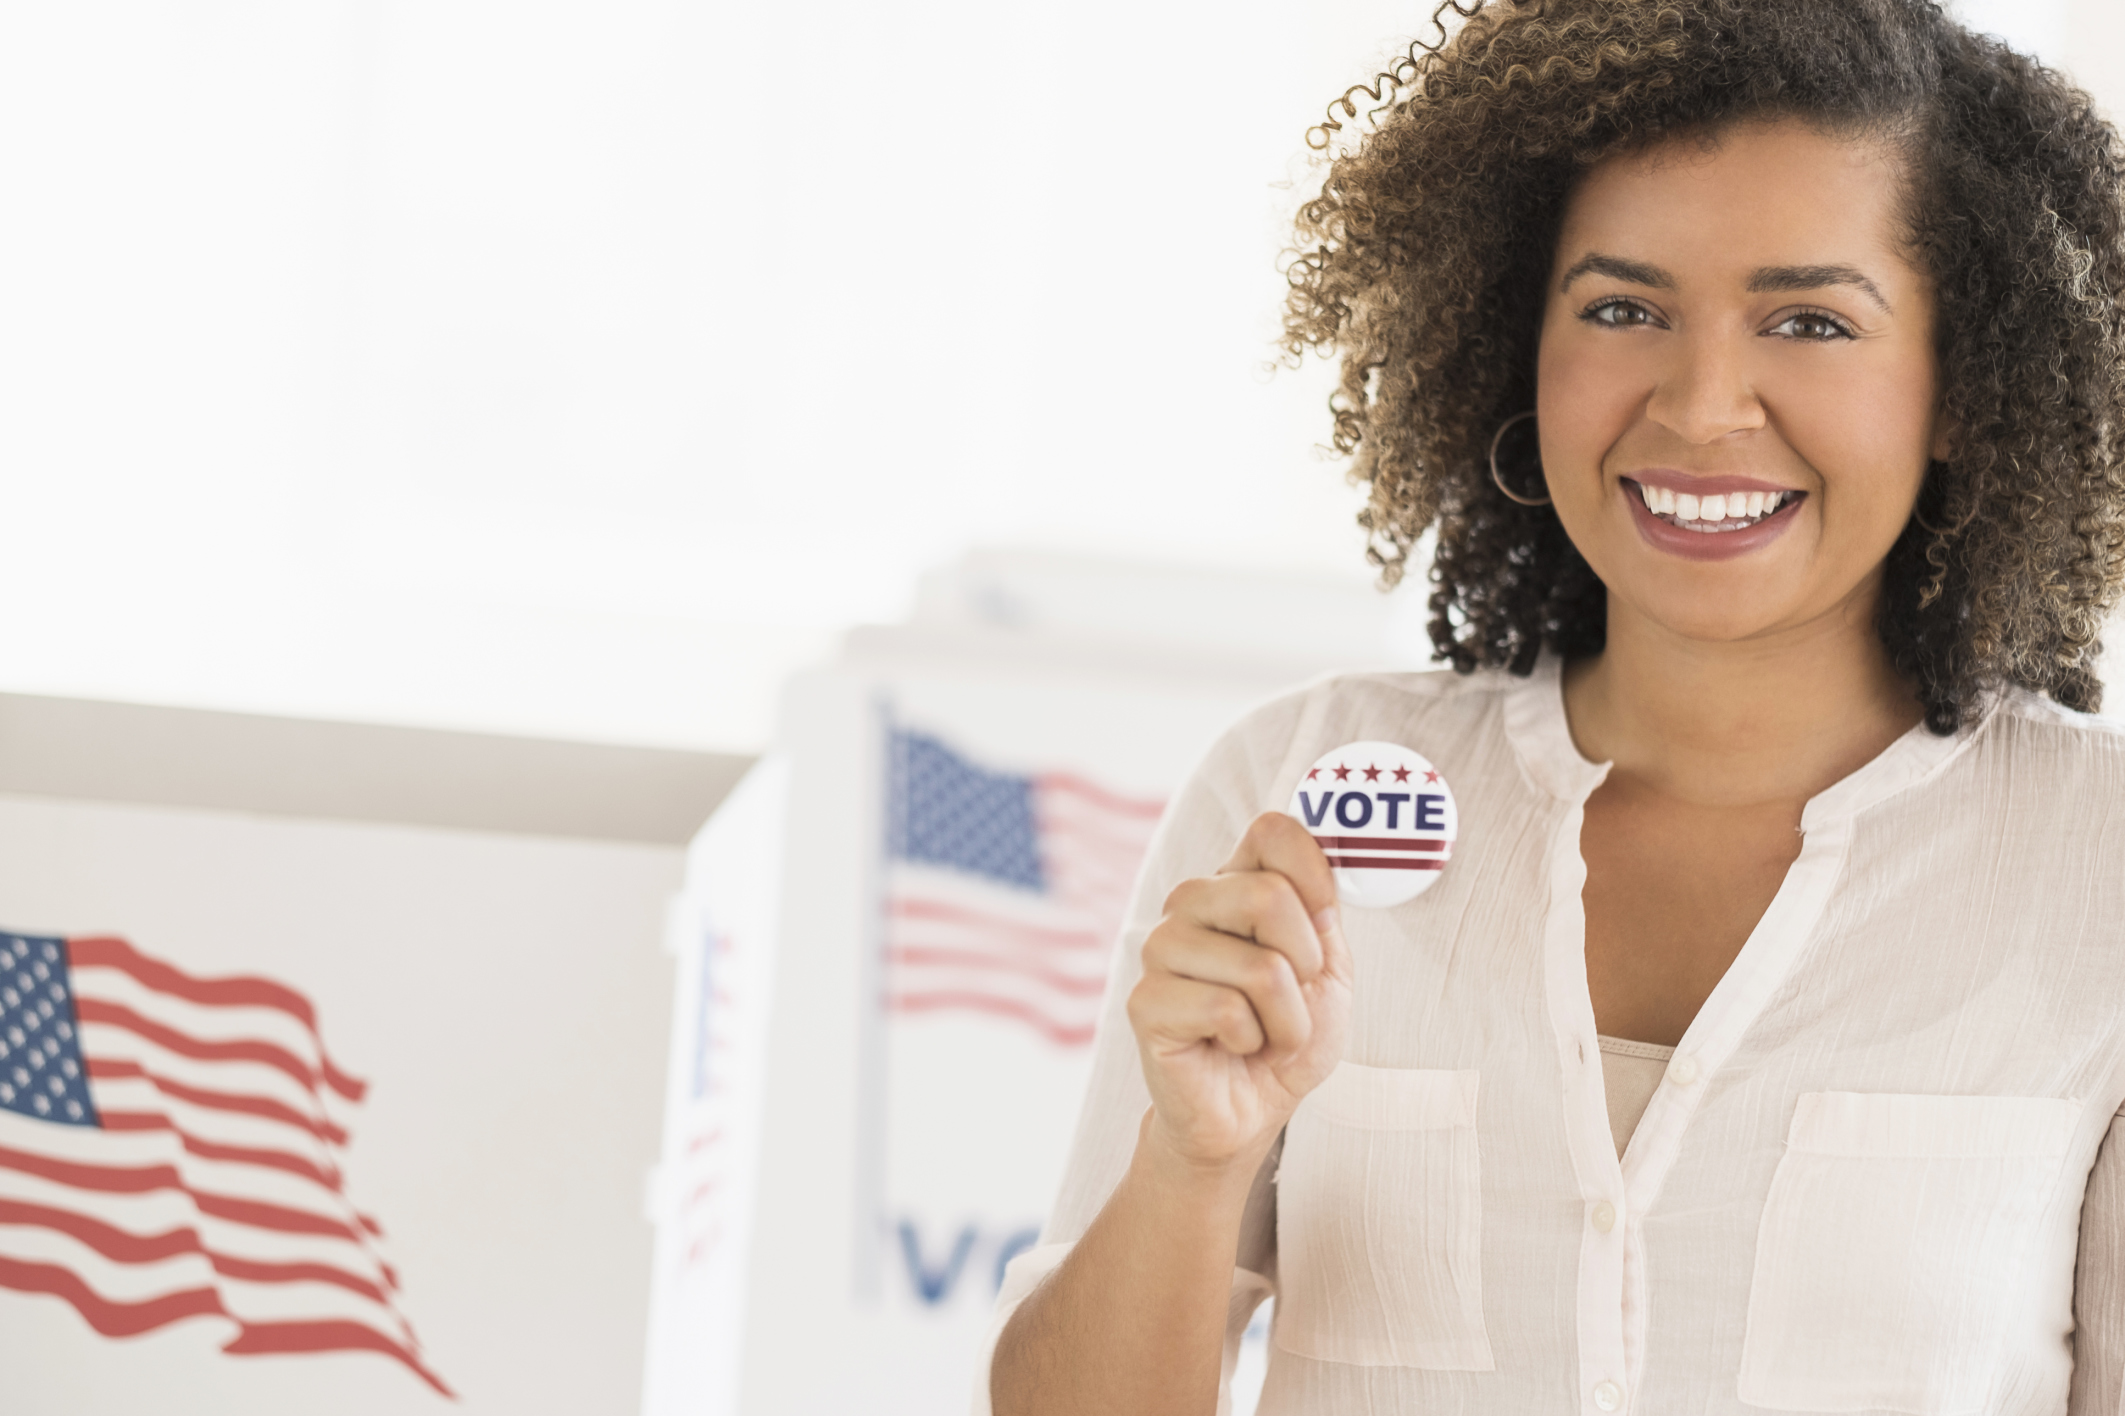 Young woman holding voting badge and smiling